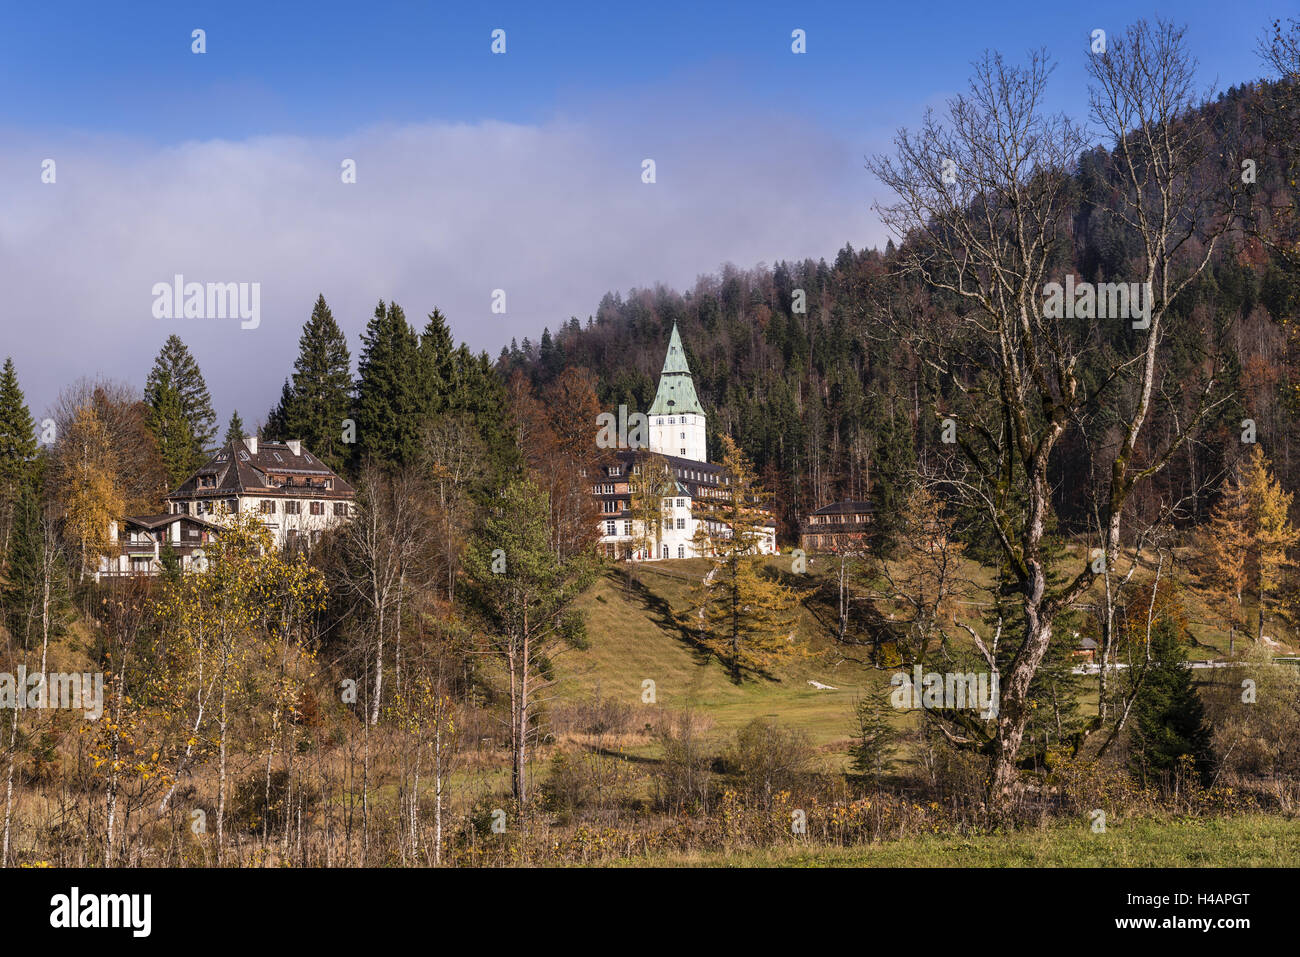 Schlosshotel Elmau G8 Summit In 2015 Stock Photos & G8 Summit In 2015 Stock